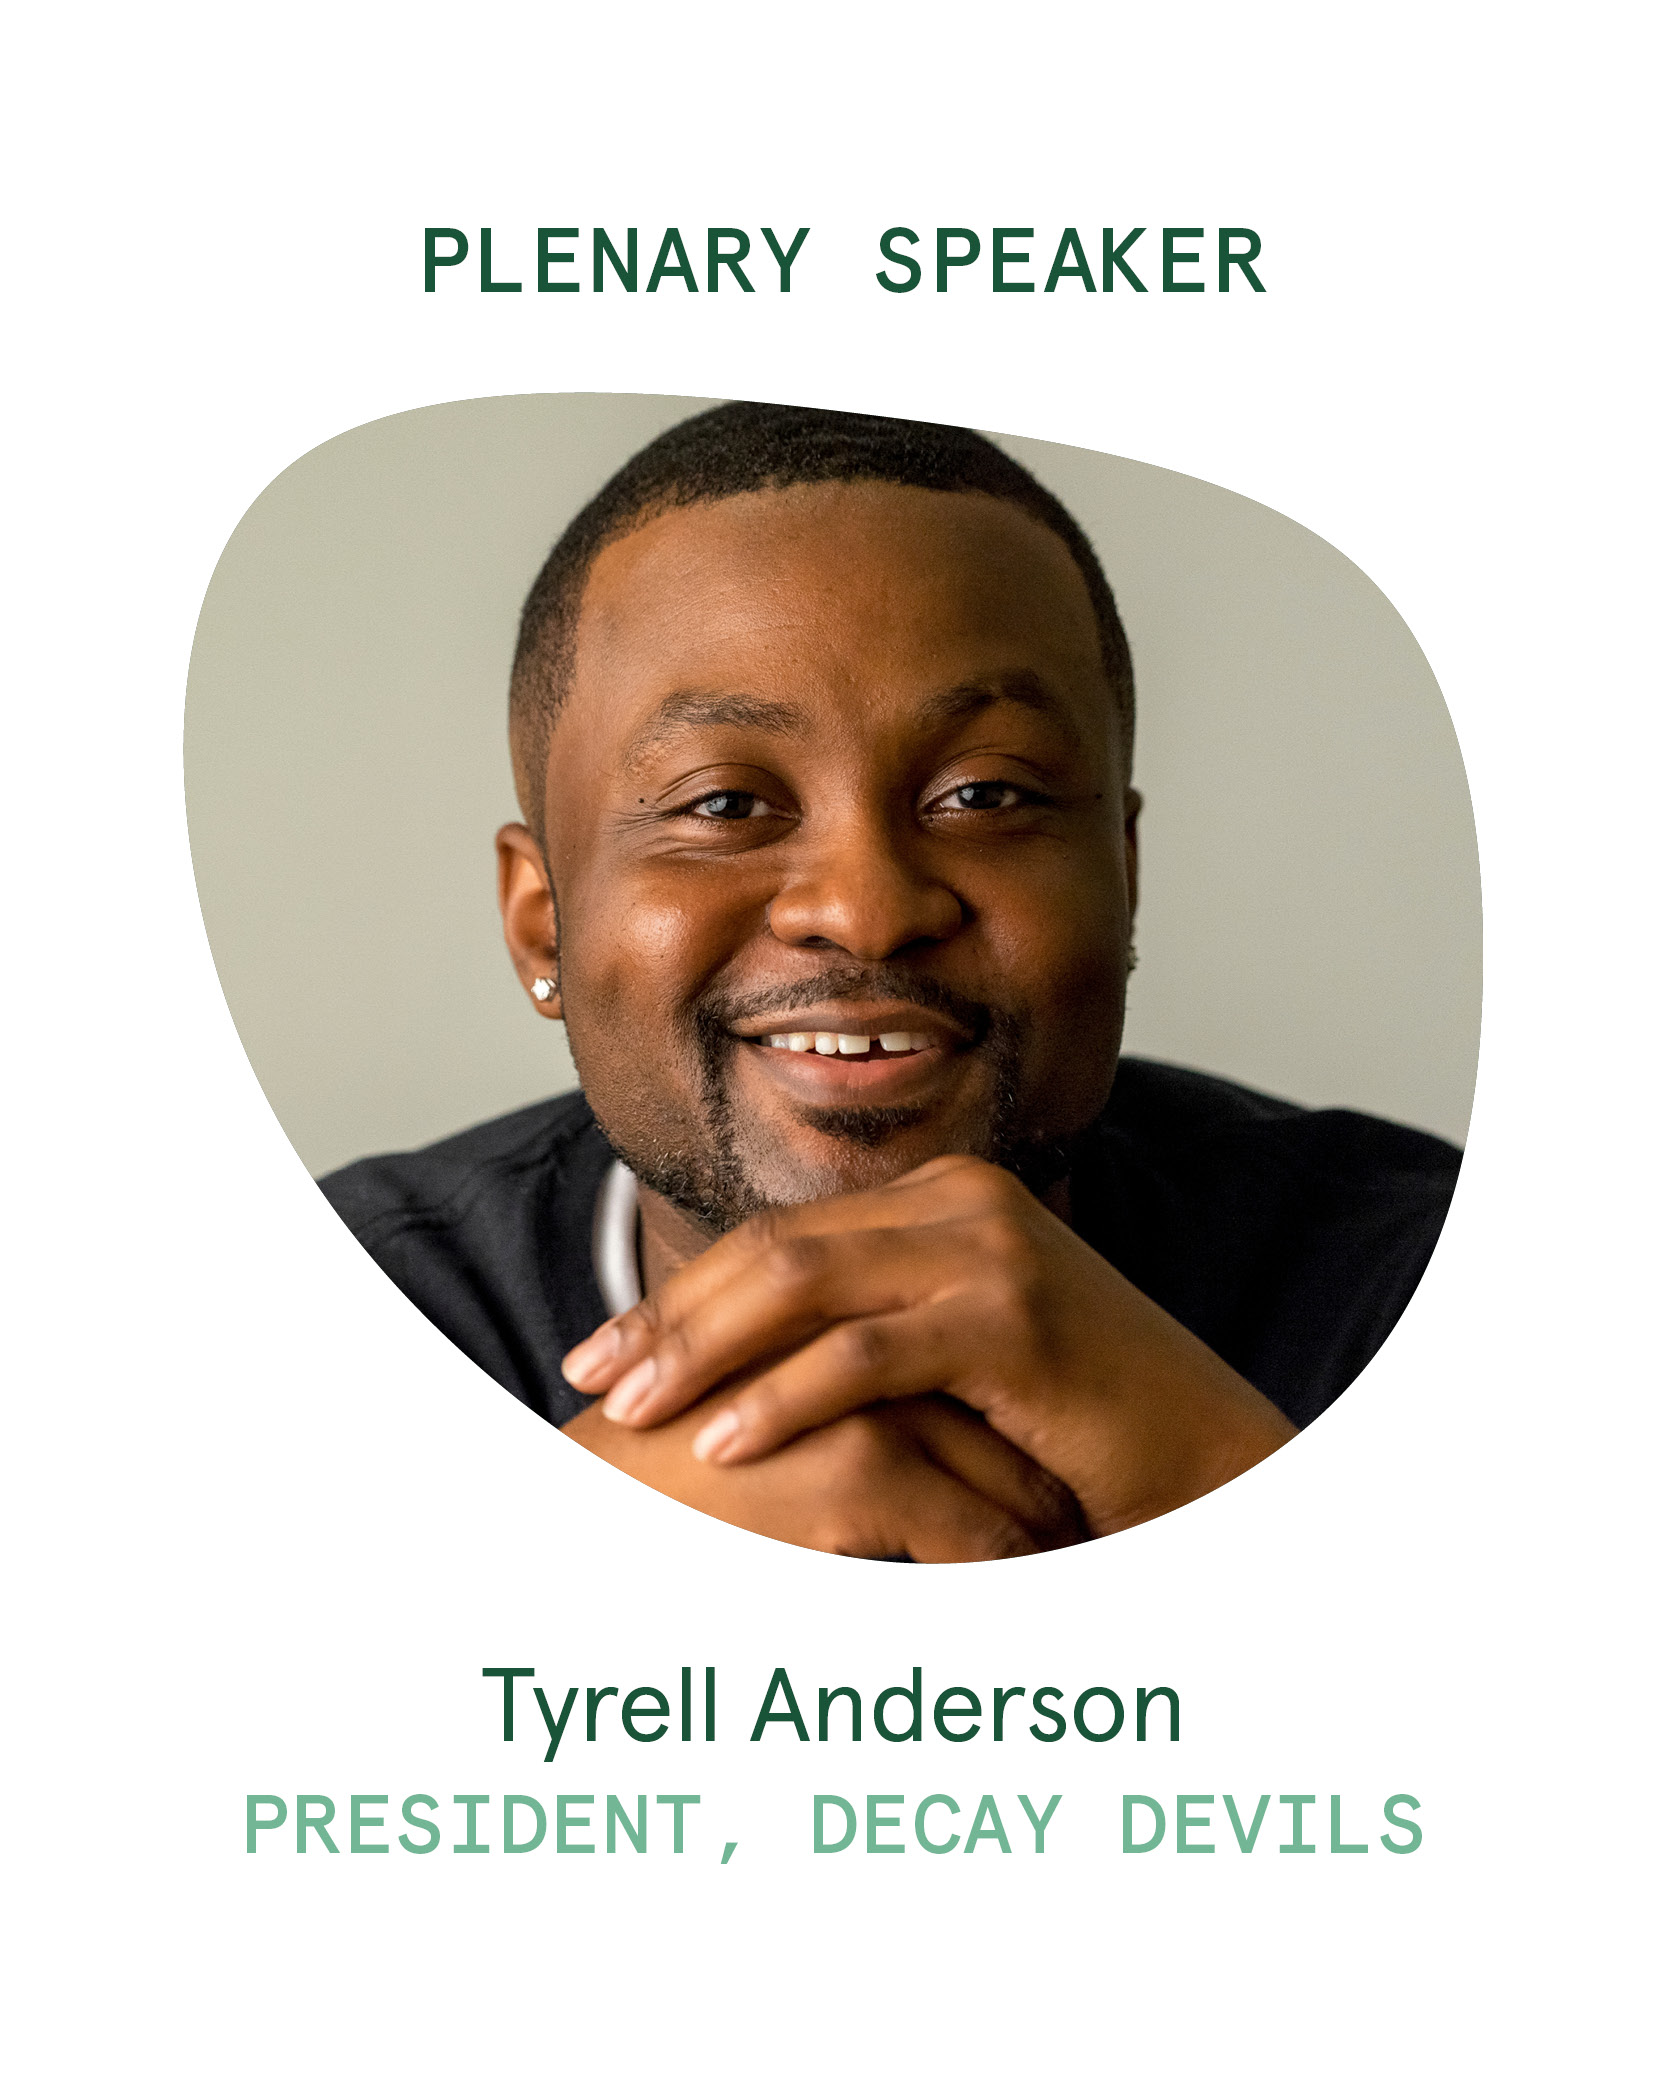 Tyrell Anderson